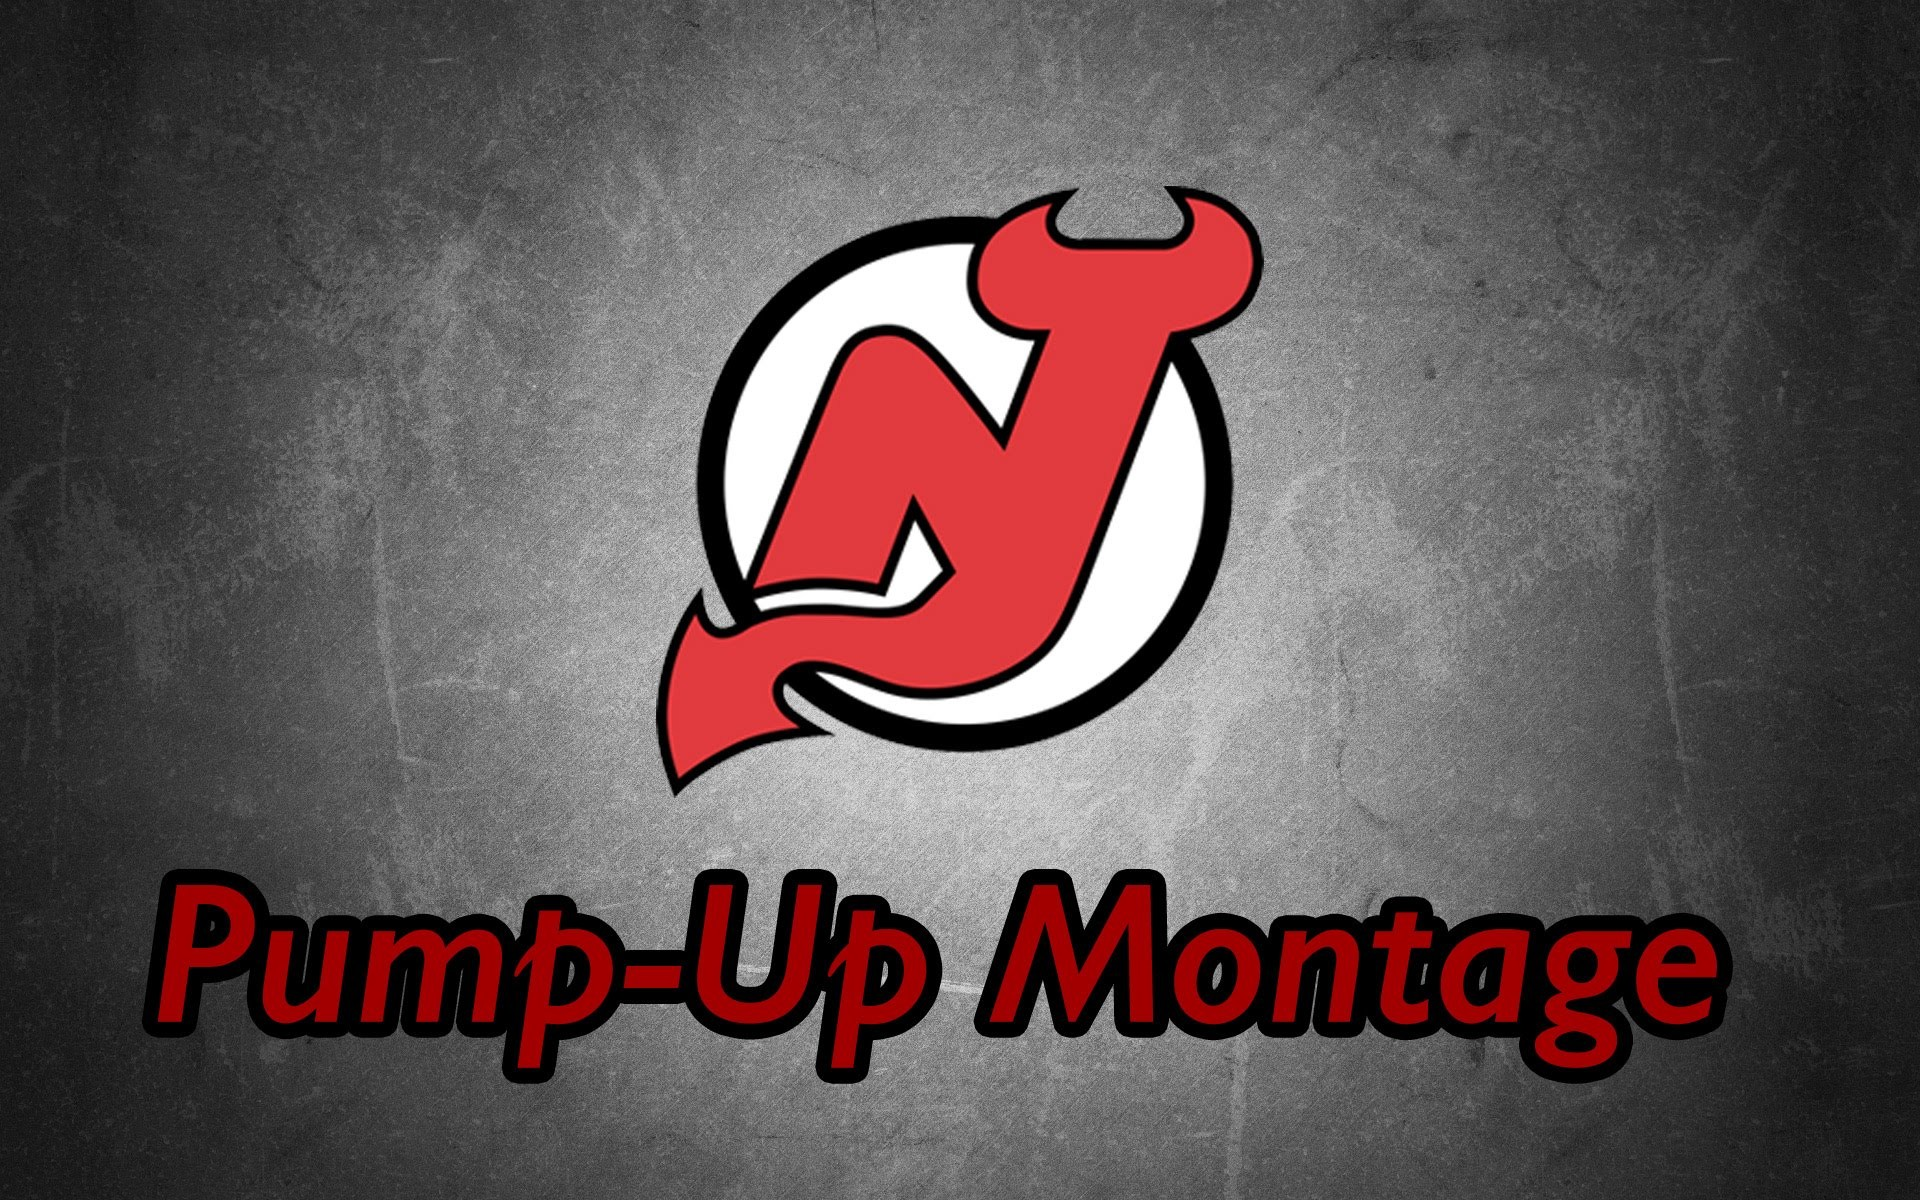 (HD) New Jersey Devils 2016-2017 Pump-Up Montage – YouTube